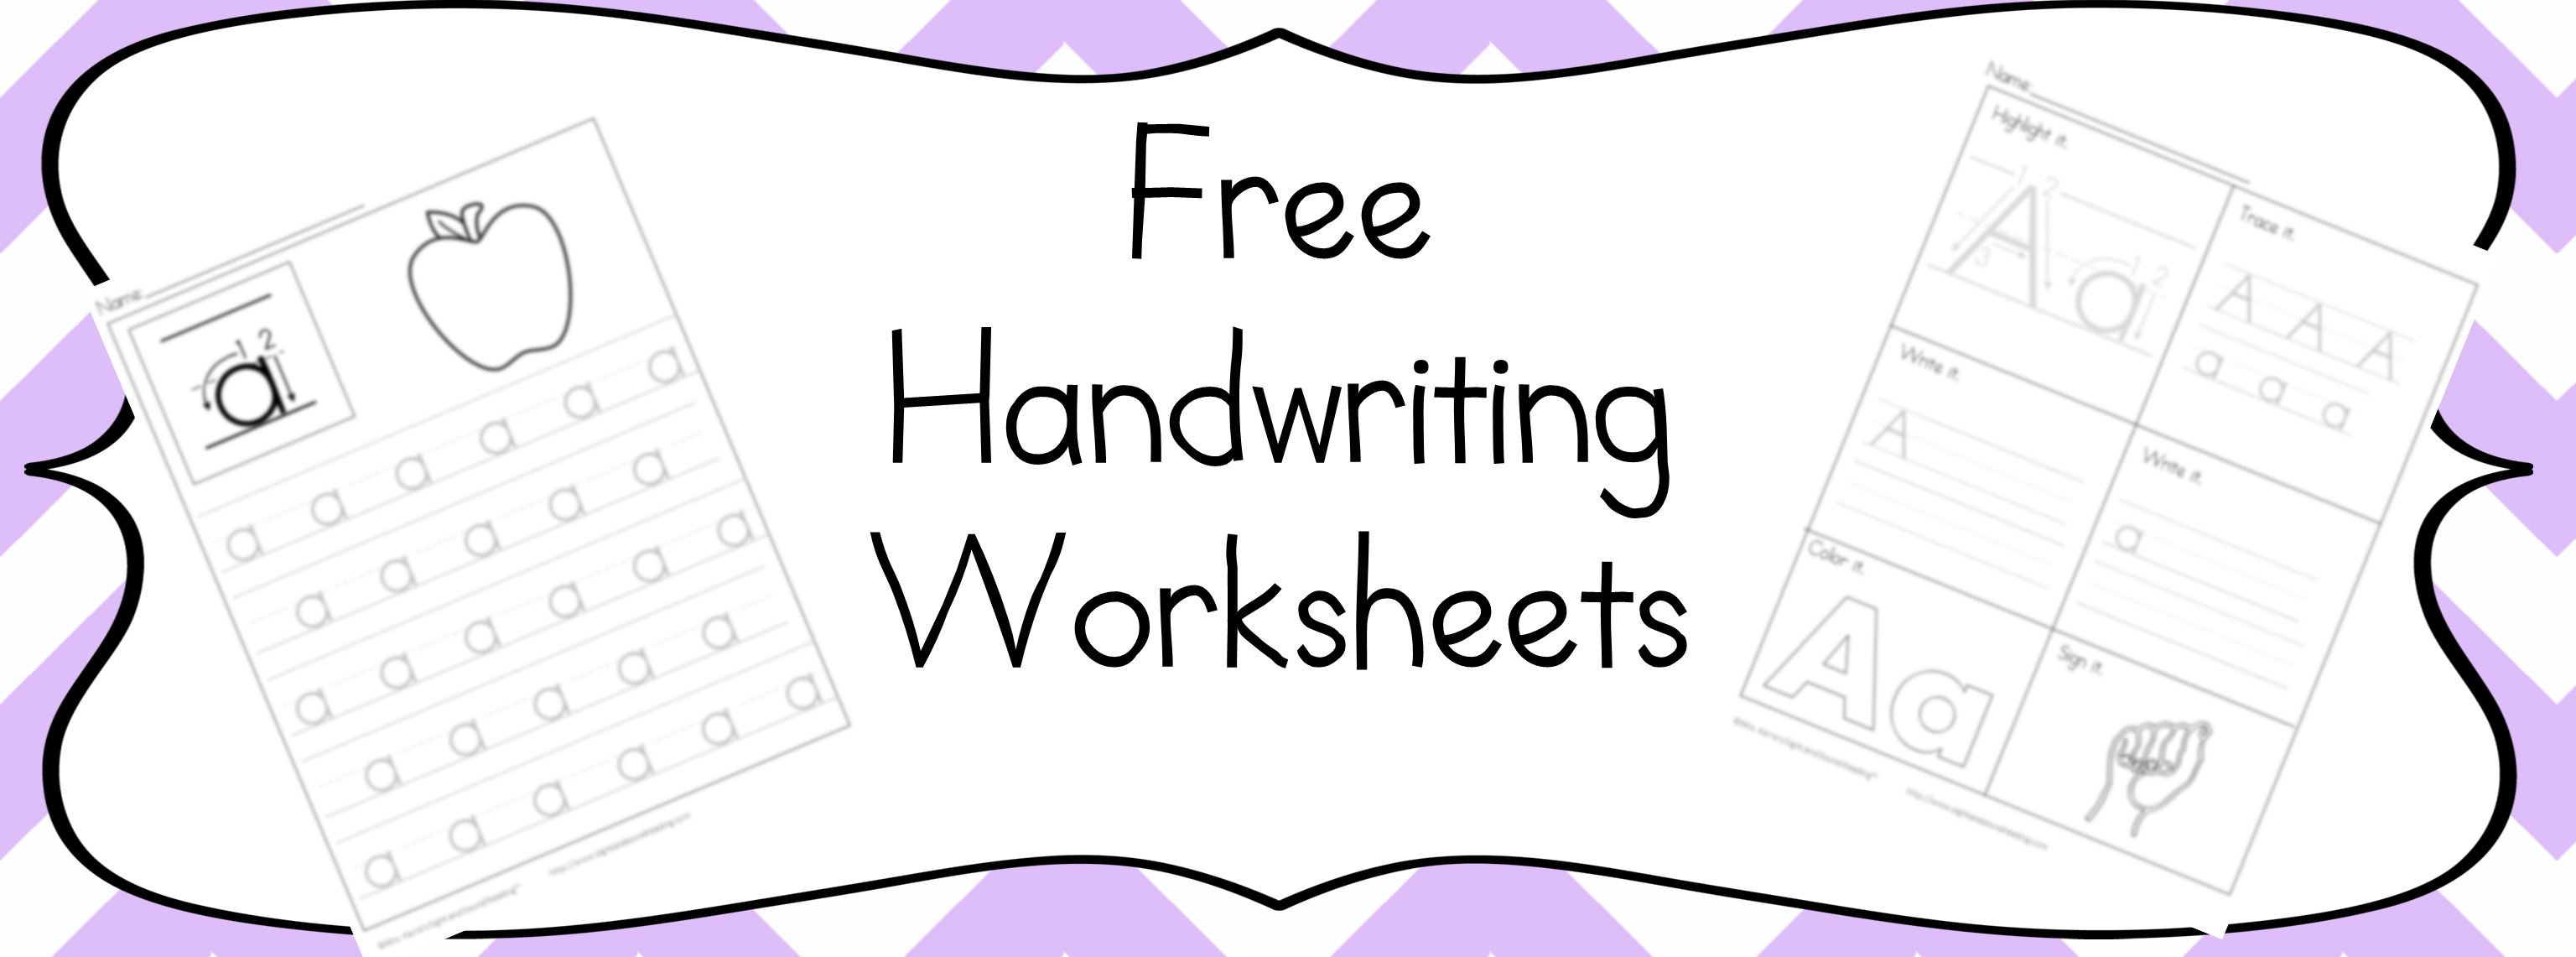 Over 350 Free Handwriting Worksheets For Kids